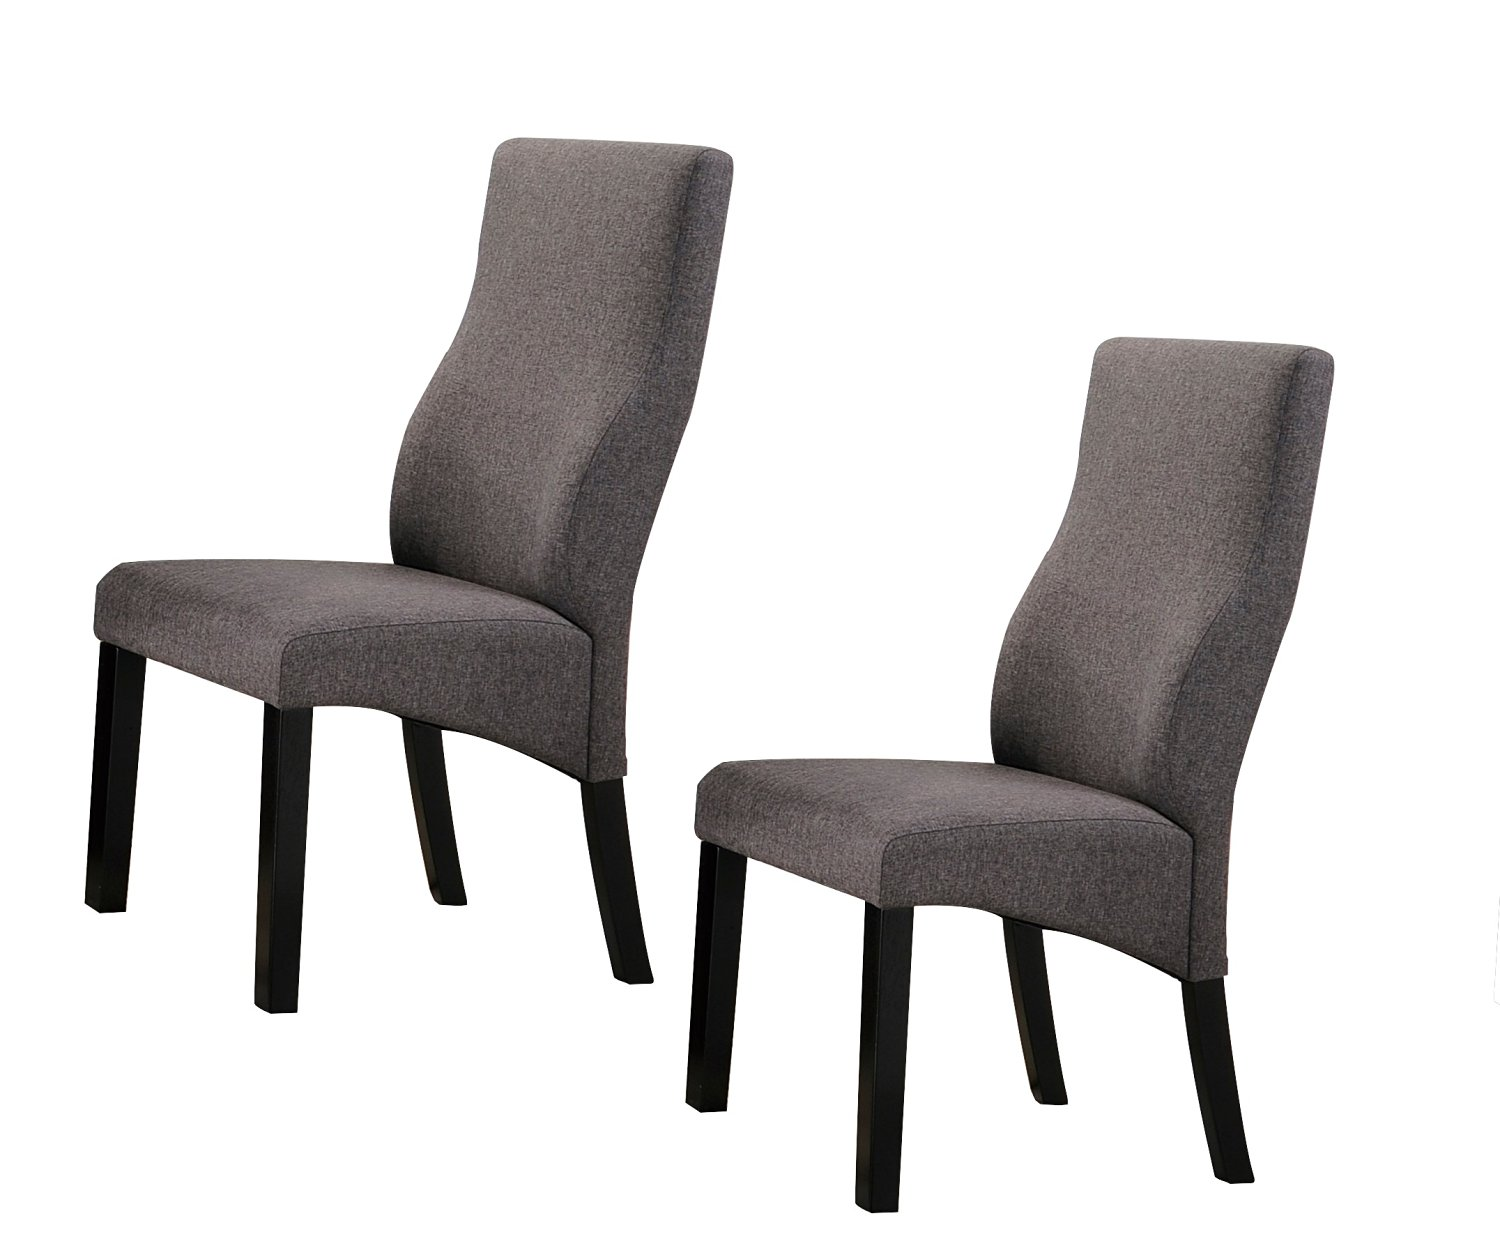 grey upholstered dining chairs uk chair rail design ideas cheap find deals on get quotations kings brand cappuccino parsons set of 2